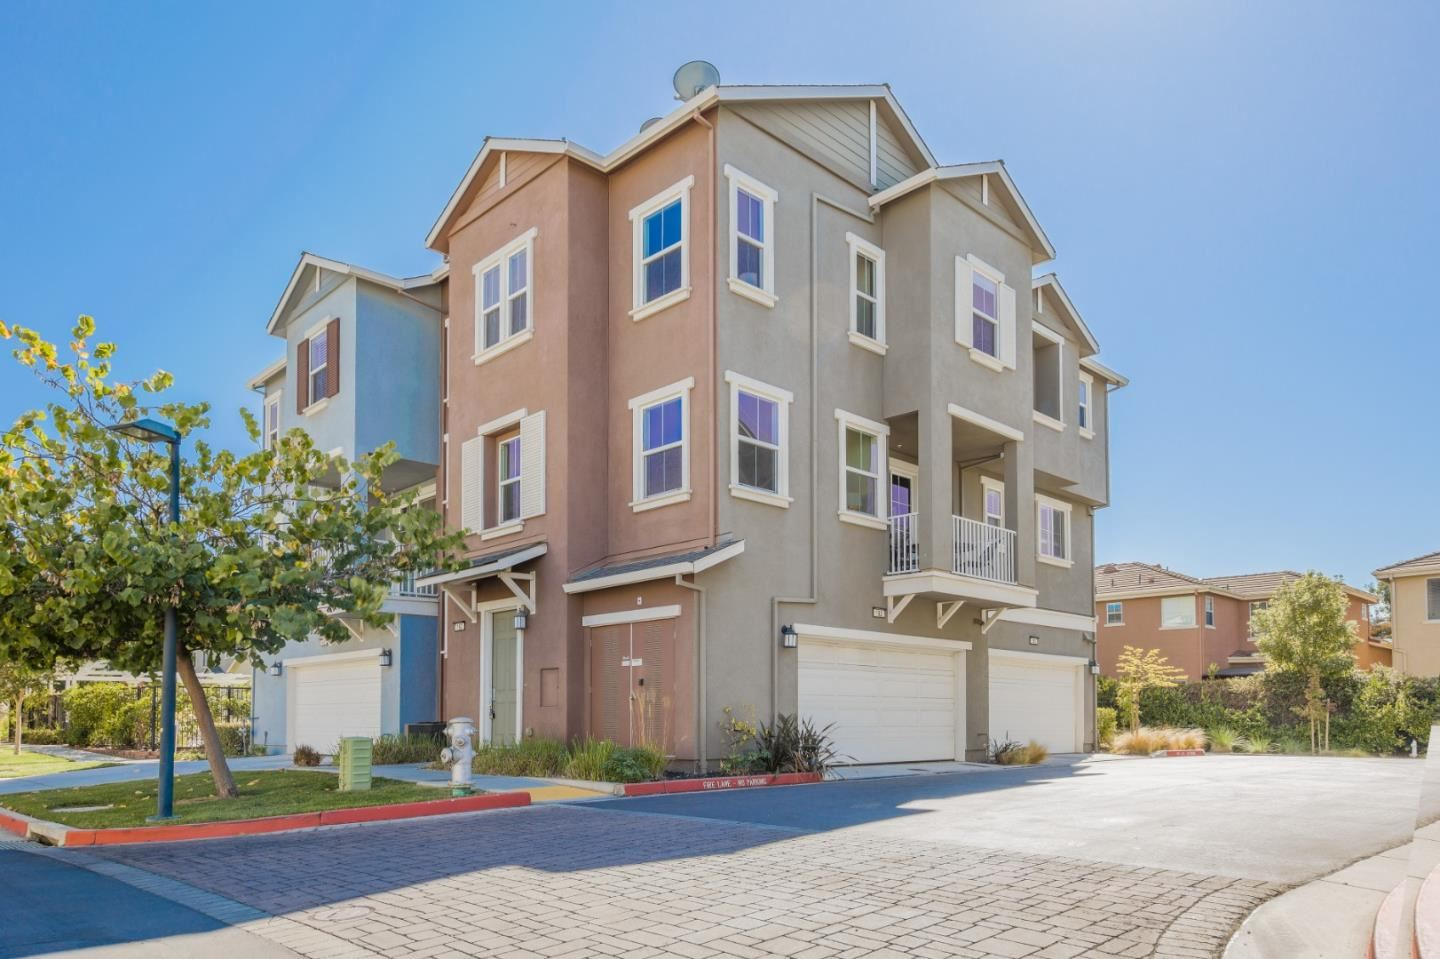 Photo for 182 Isis Court, MOUNTAIN VIEW, CA 94043 (MLS # ML81864830)